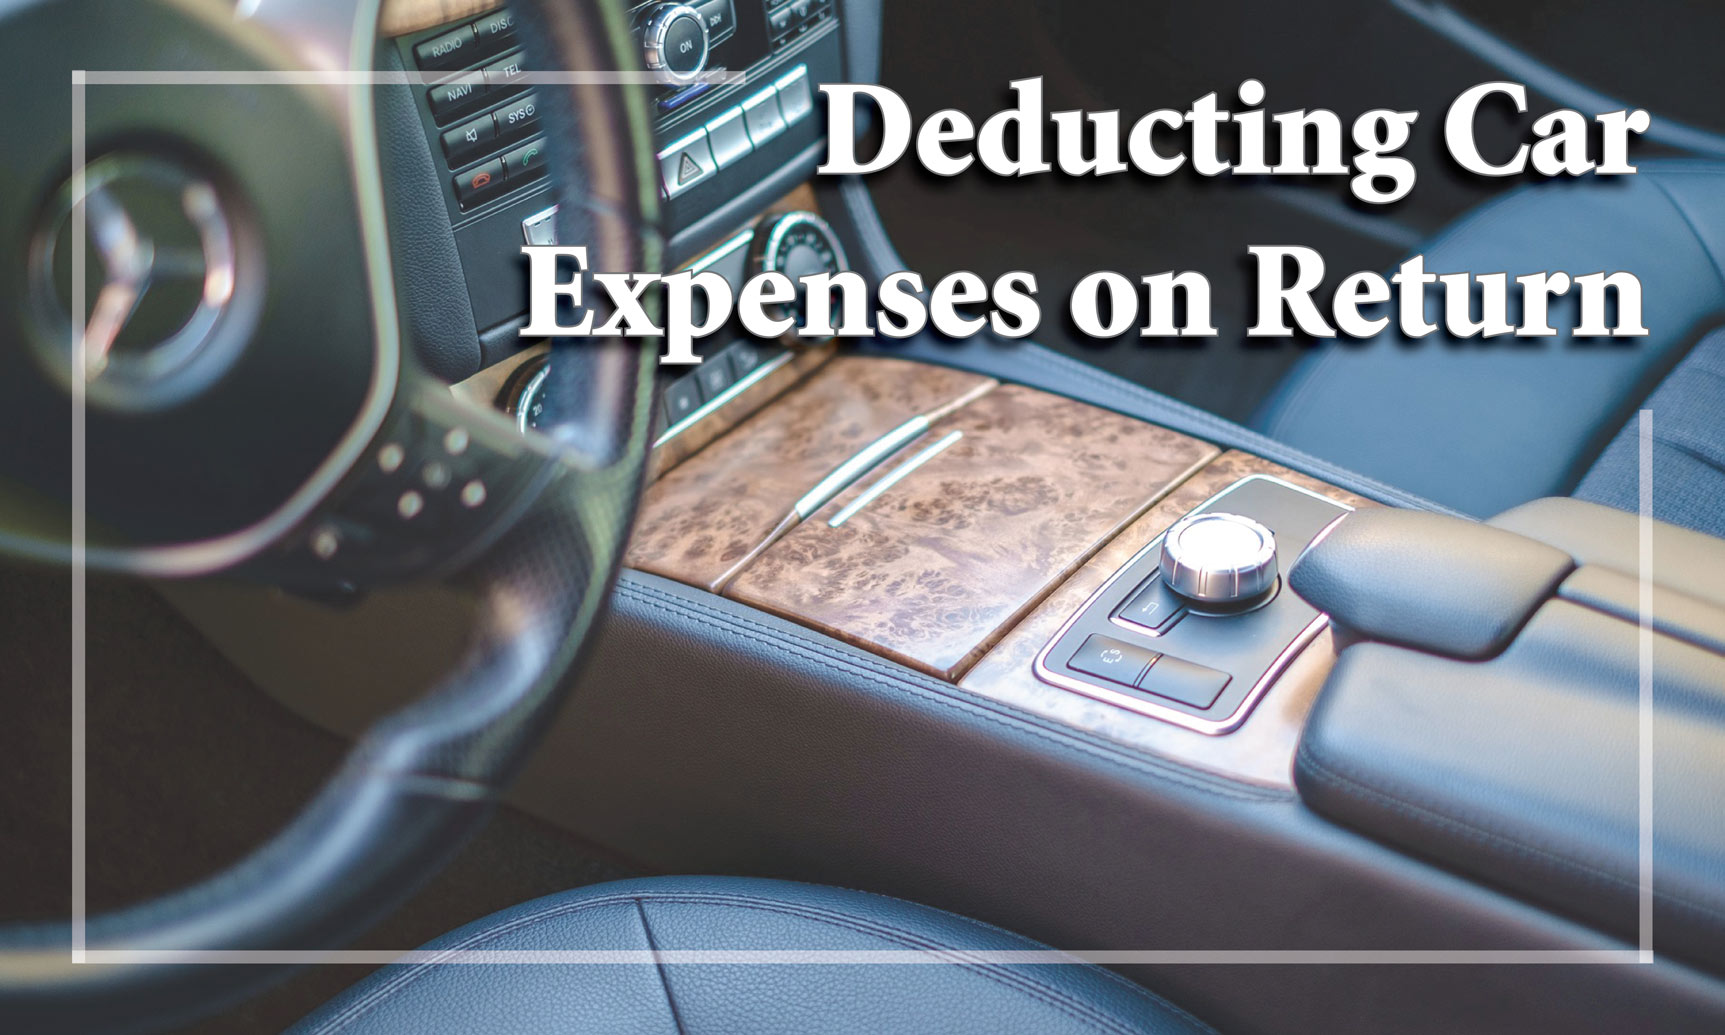 Who can deduct car expenses on their tax returns?